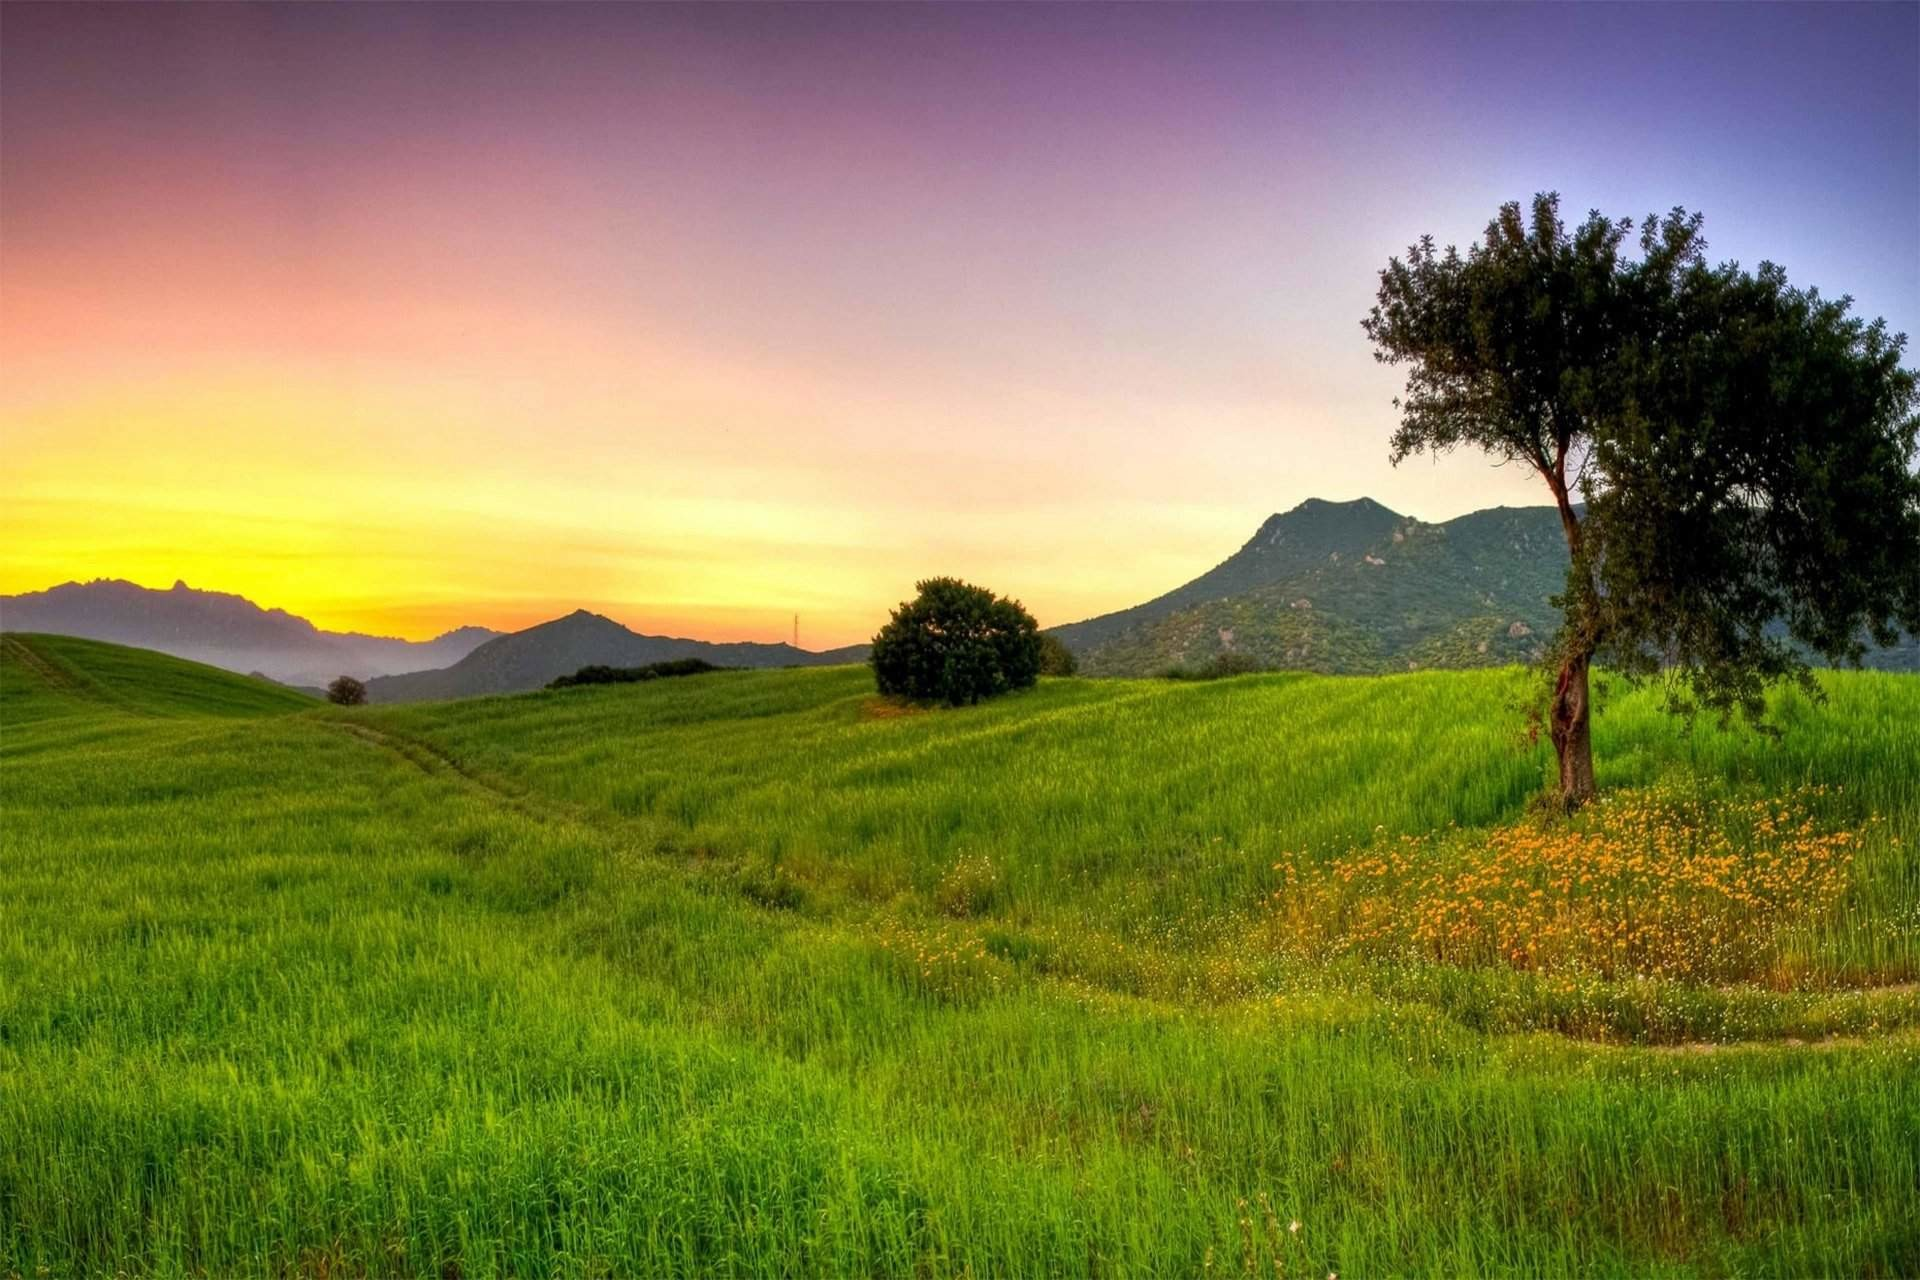 Nature Wallpaper aa Hd Latest Wallpapers Best Nature 1920×1280 Latest HD Nature  Wallpapers (